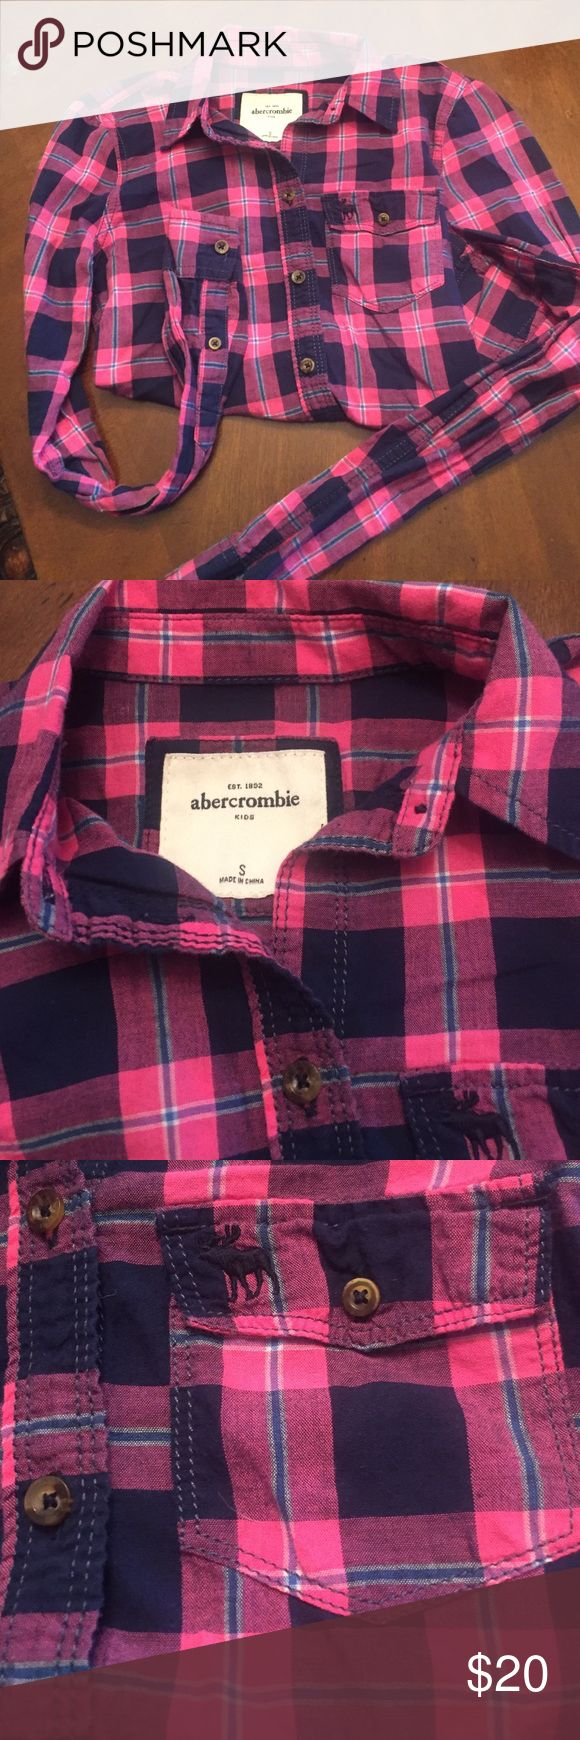 Abercrombie Girls plaid shirt Like new. Abercrombie pink and blue plaid button down. abercrombie kids Shirts & Tops Button Down Shirts